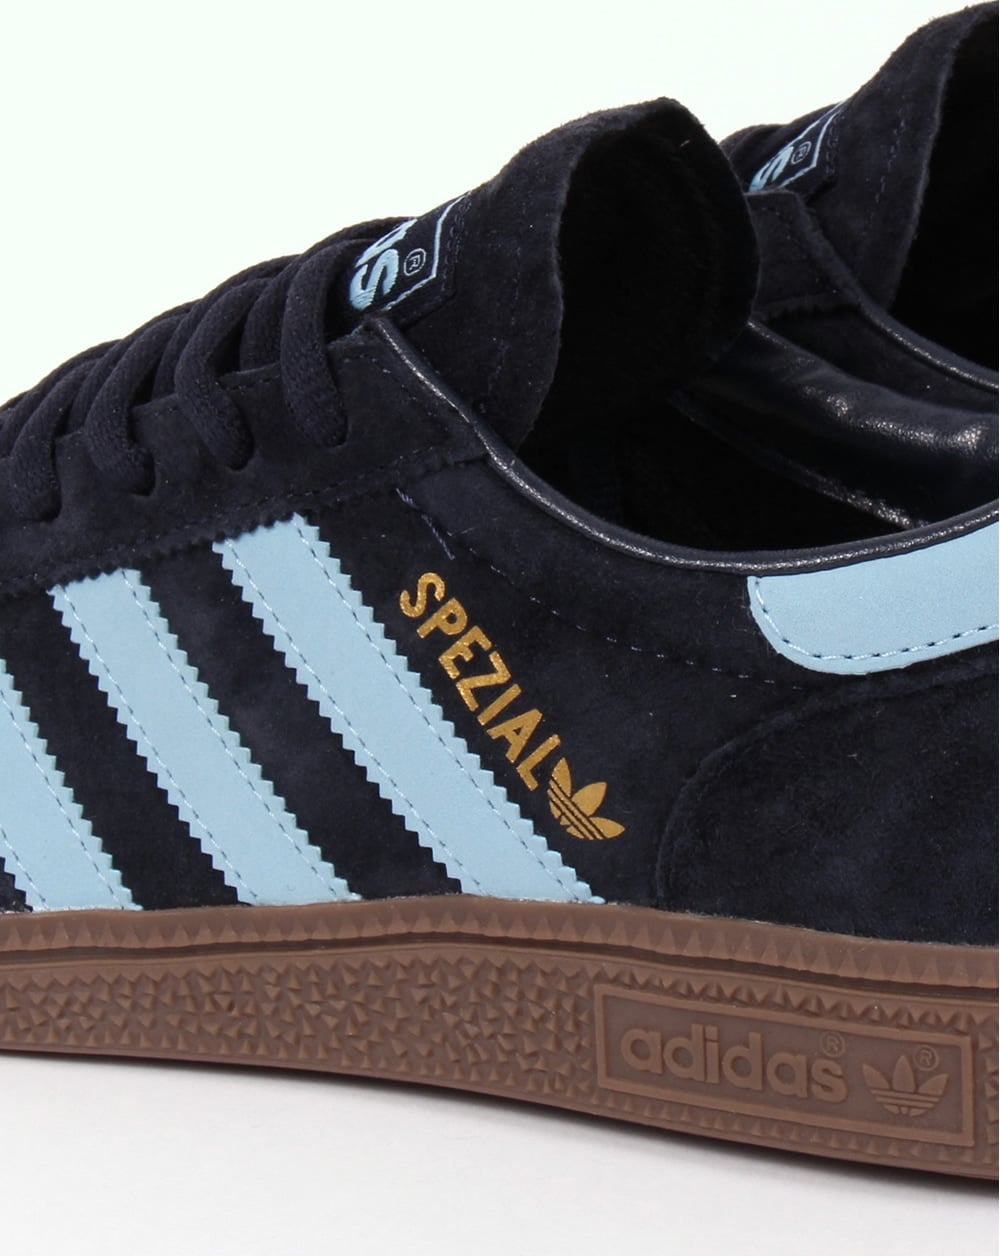 93e3ee81673 Adidas Spezial Trainers Navy argentina Blue